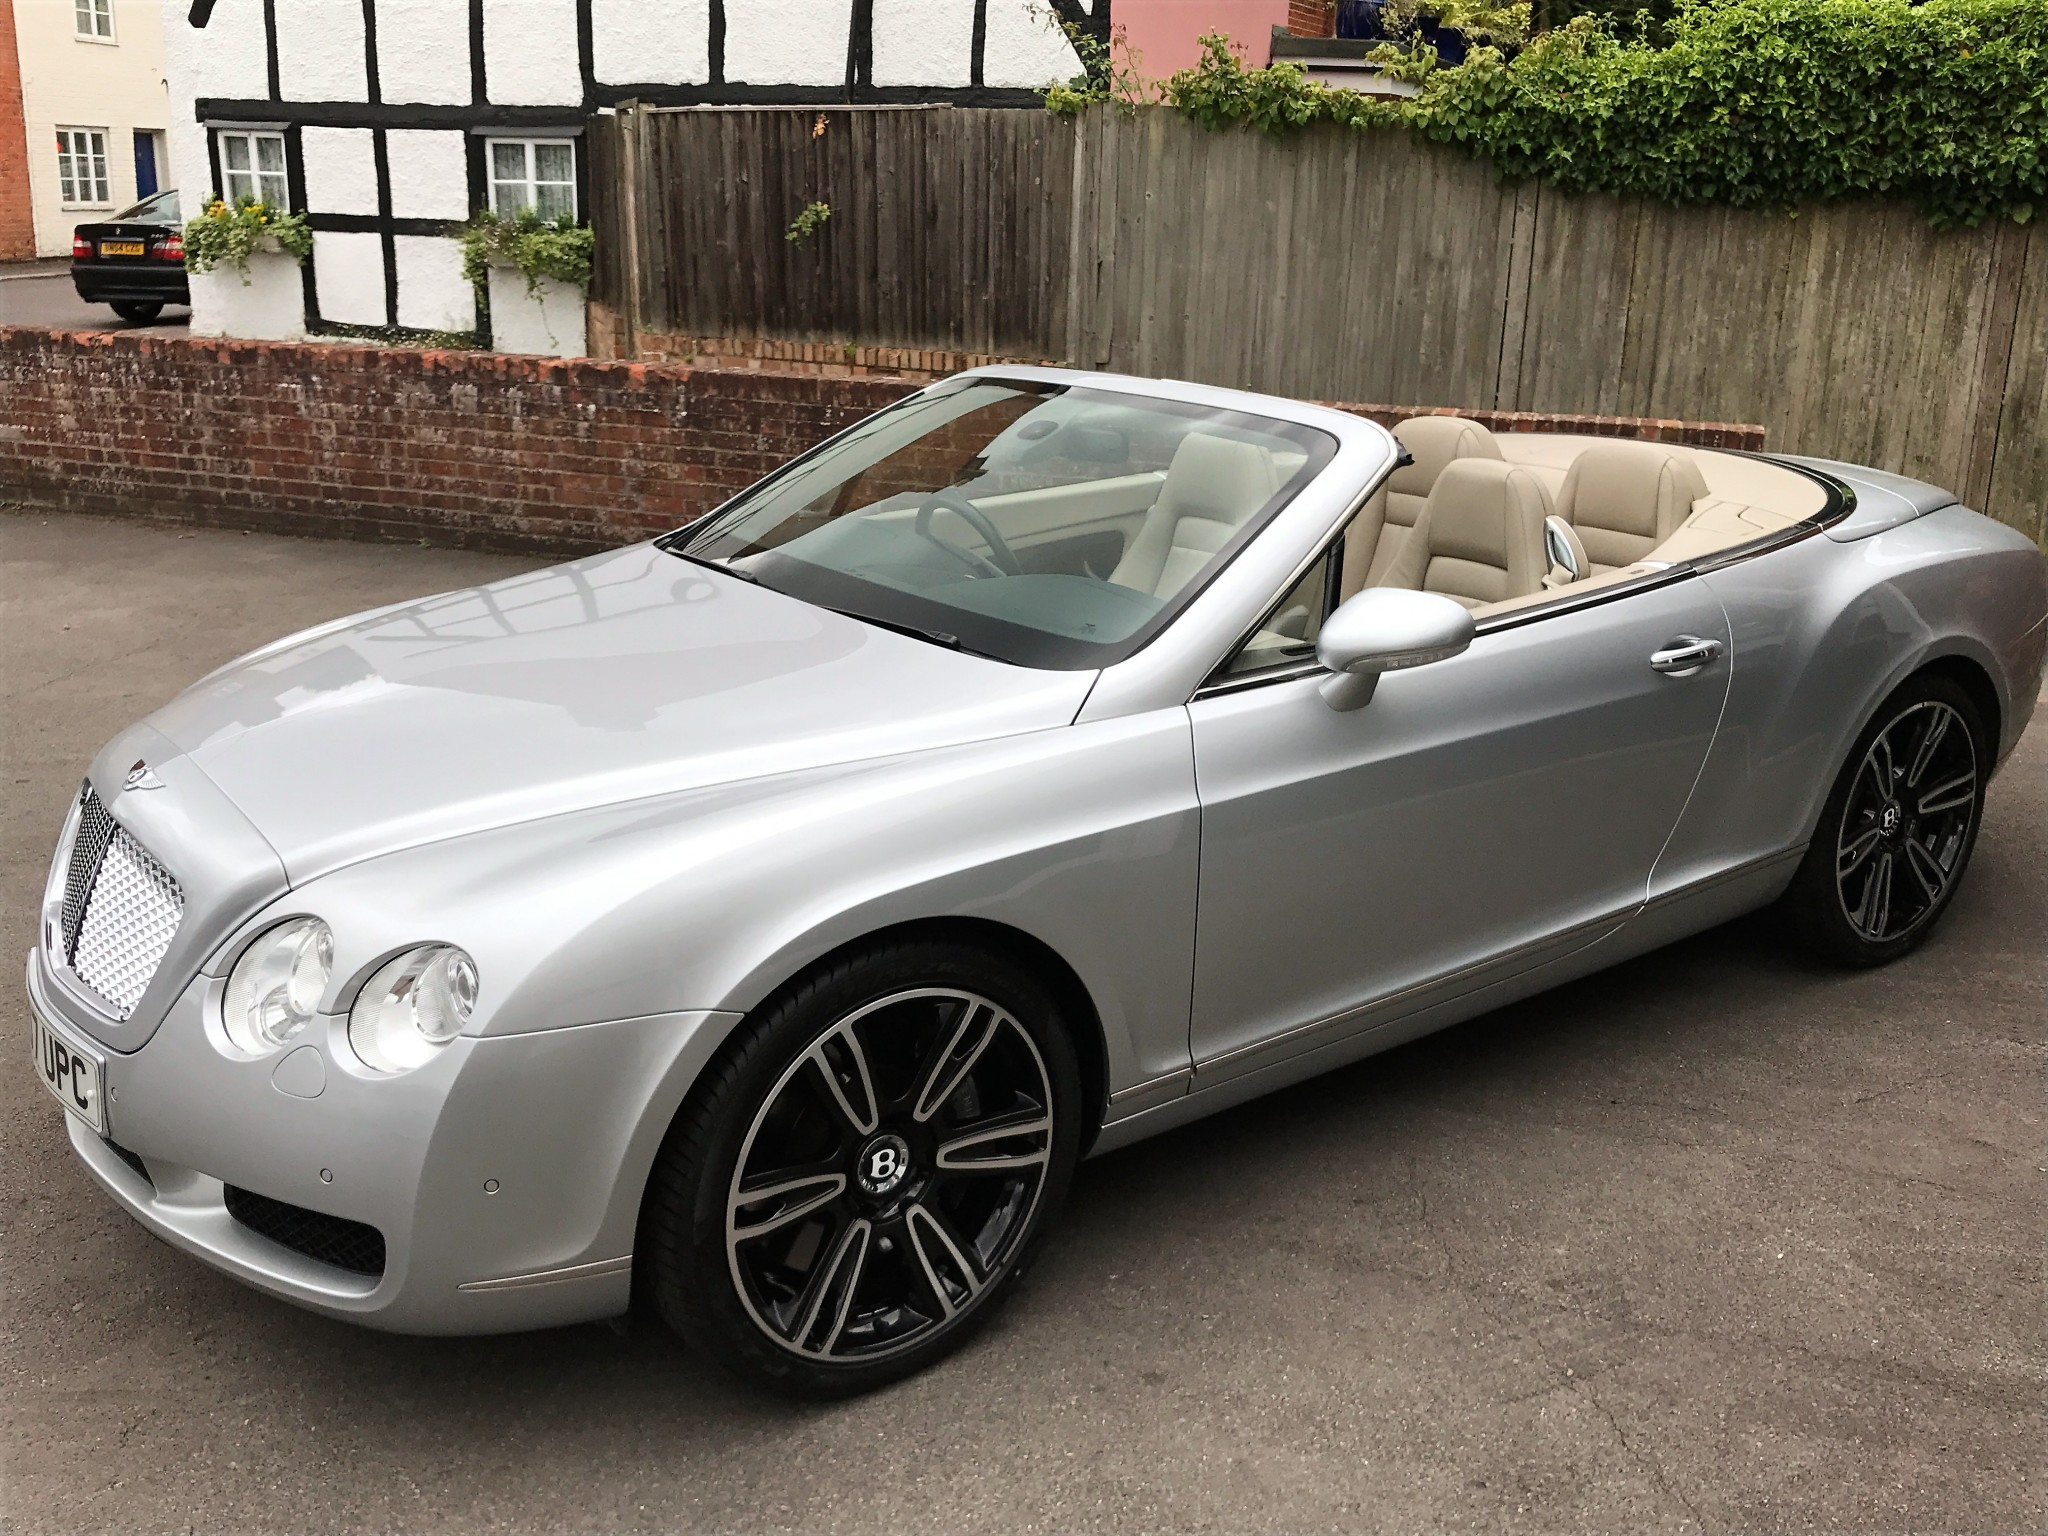 Bentley Continental GTC – 2007 – Phantom Motor Cars Ltd.